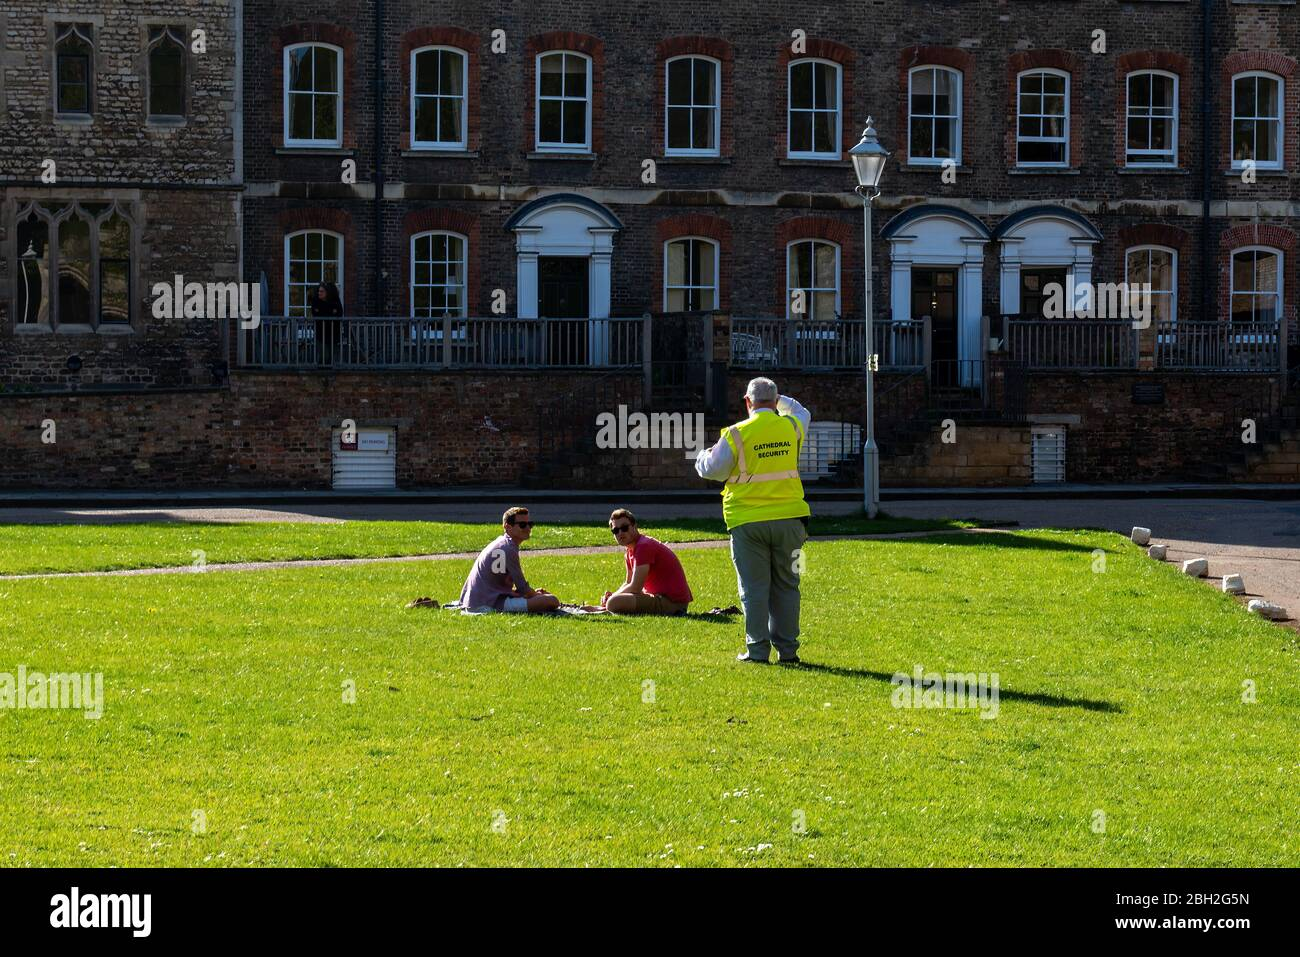 Security guard breaks up picnic of friends not adhering to social distancing guidelines Stock Photo